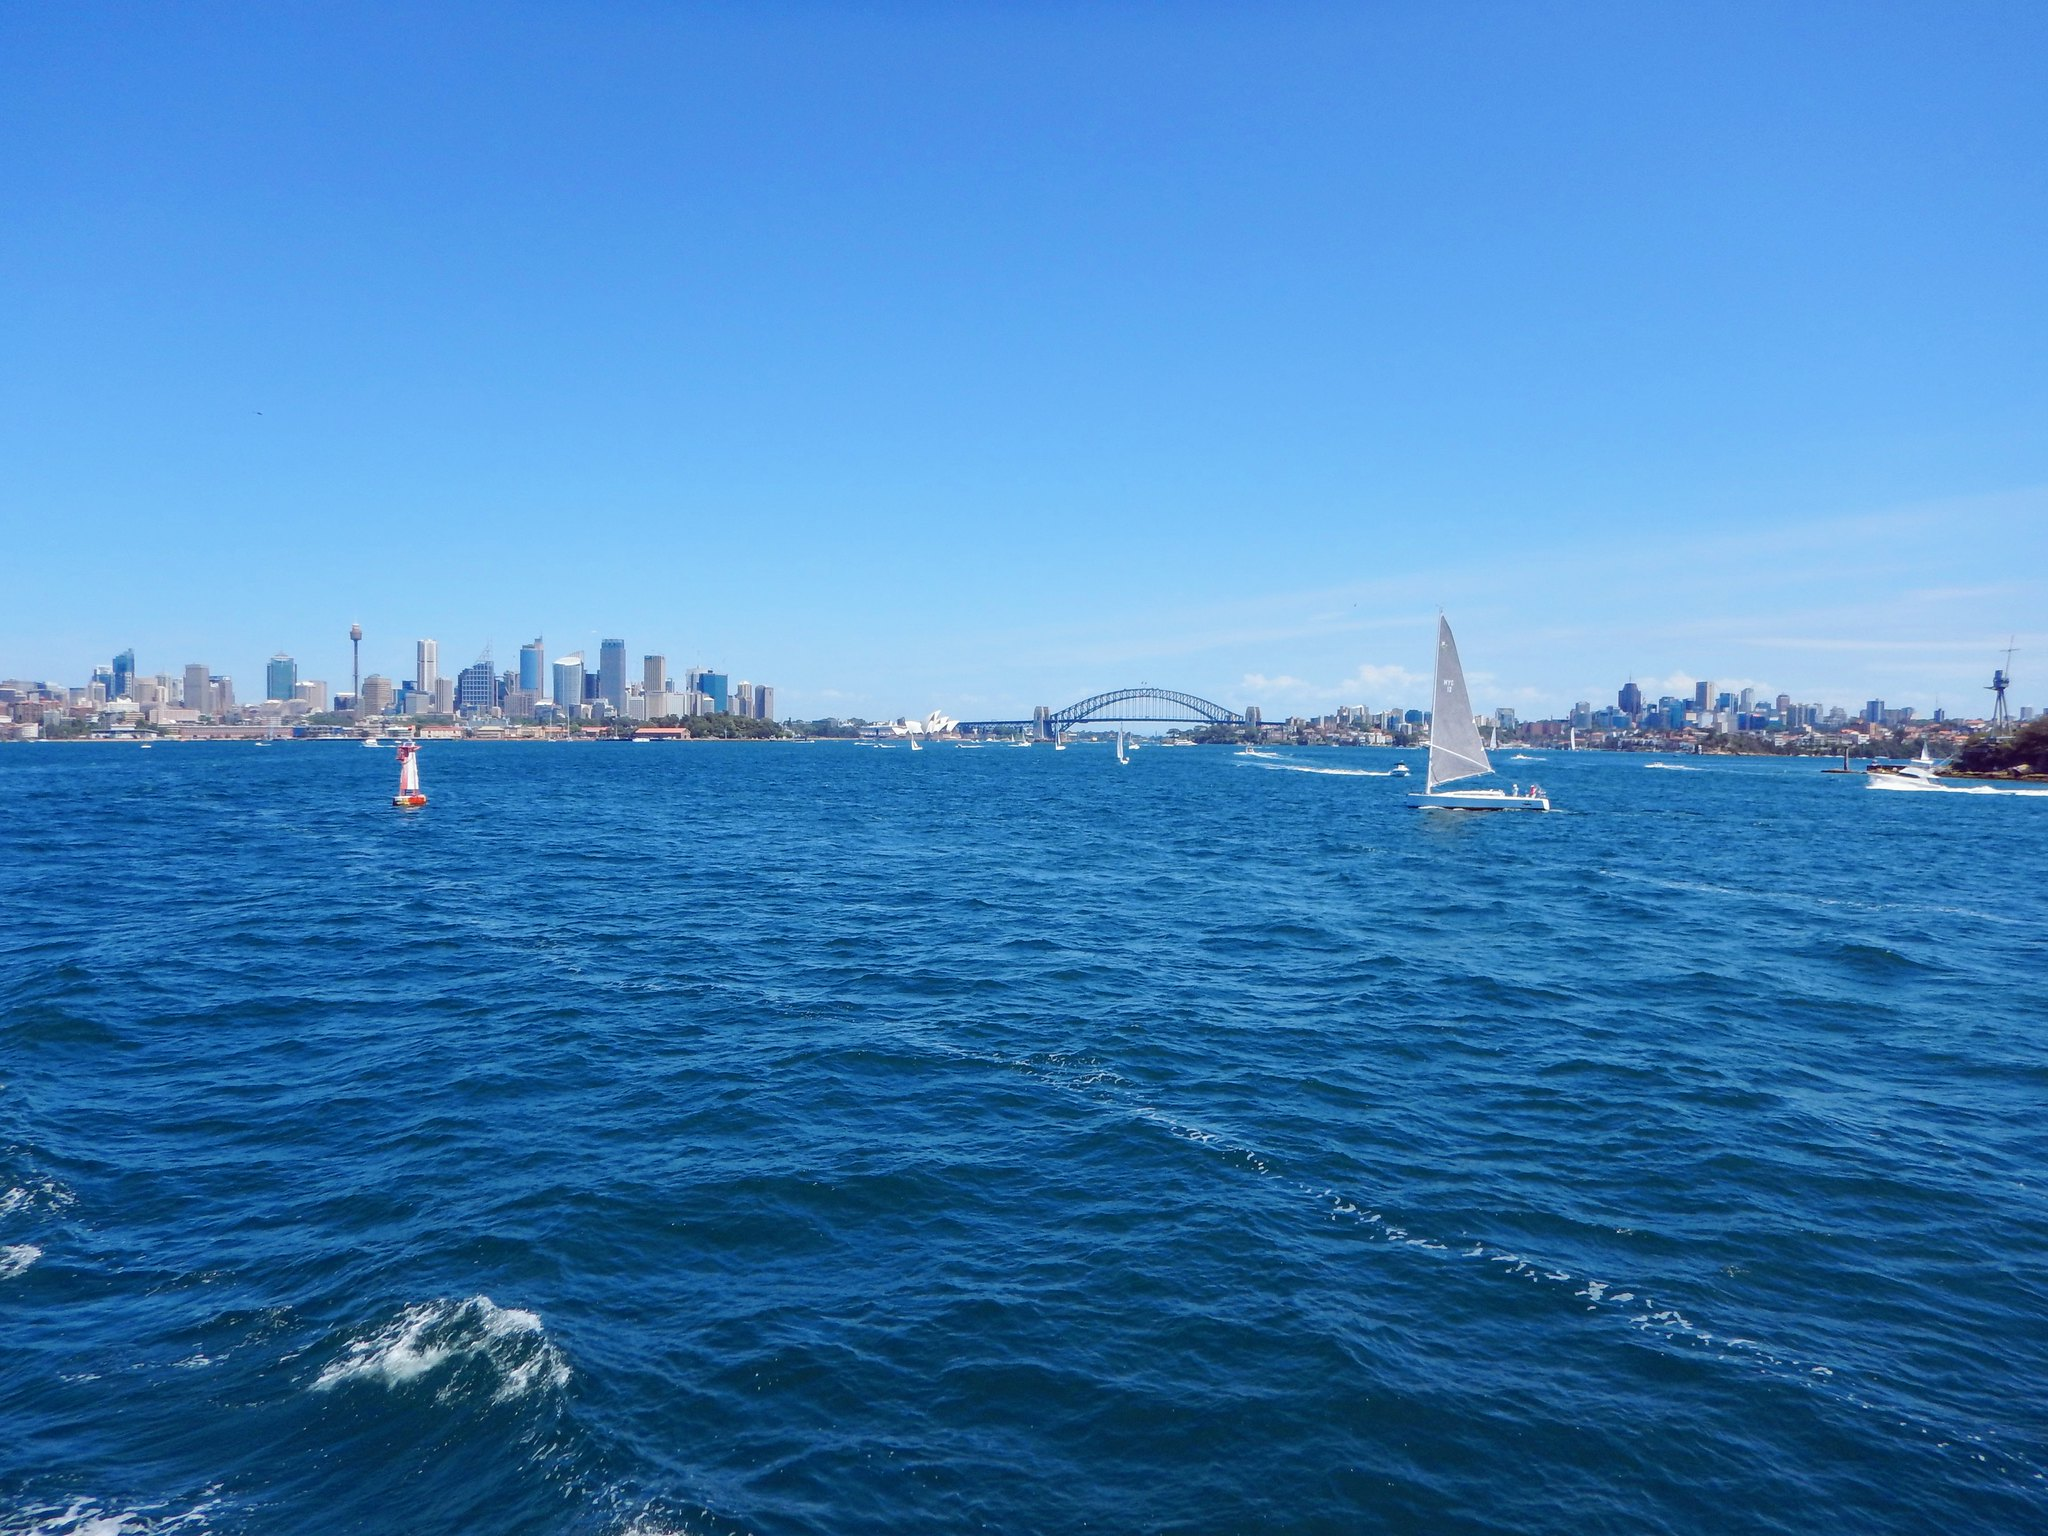 The Sydney bay from the Manley ferry